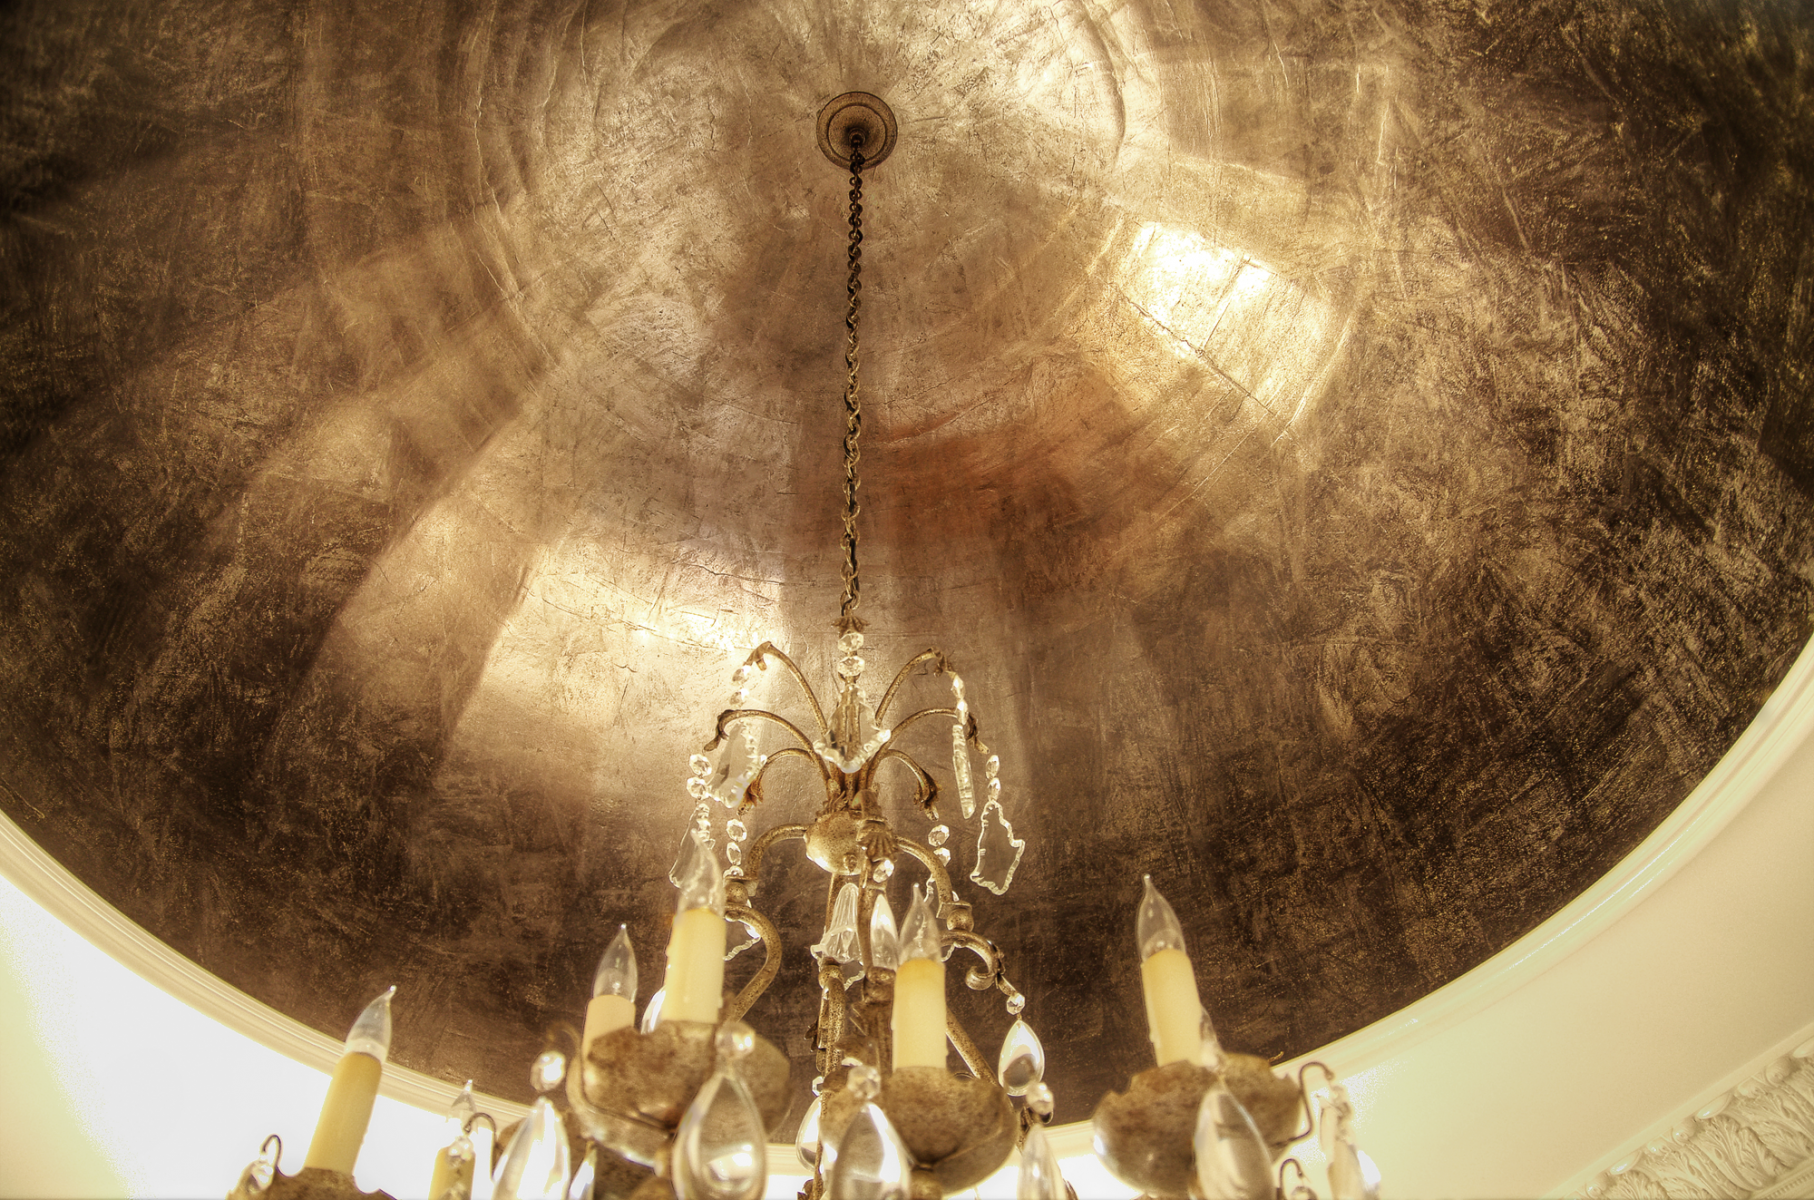 Silver and gold frottage dome ceiling design.